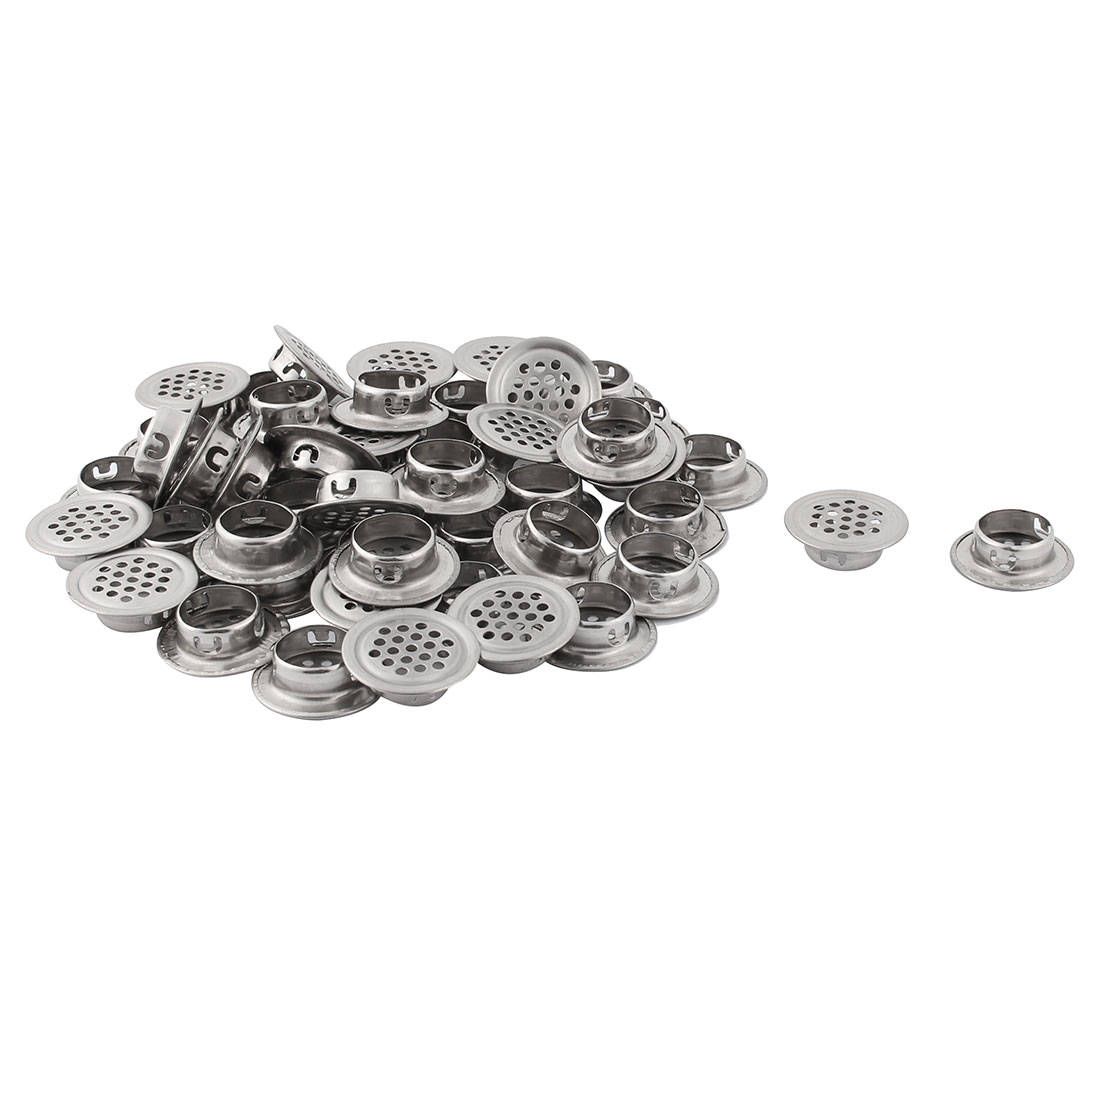 Household Stainless Steel Furniture Perforated Mesh Air Vents 19mm Dia 50pcs